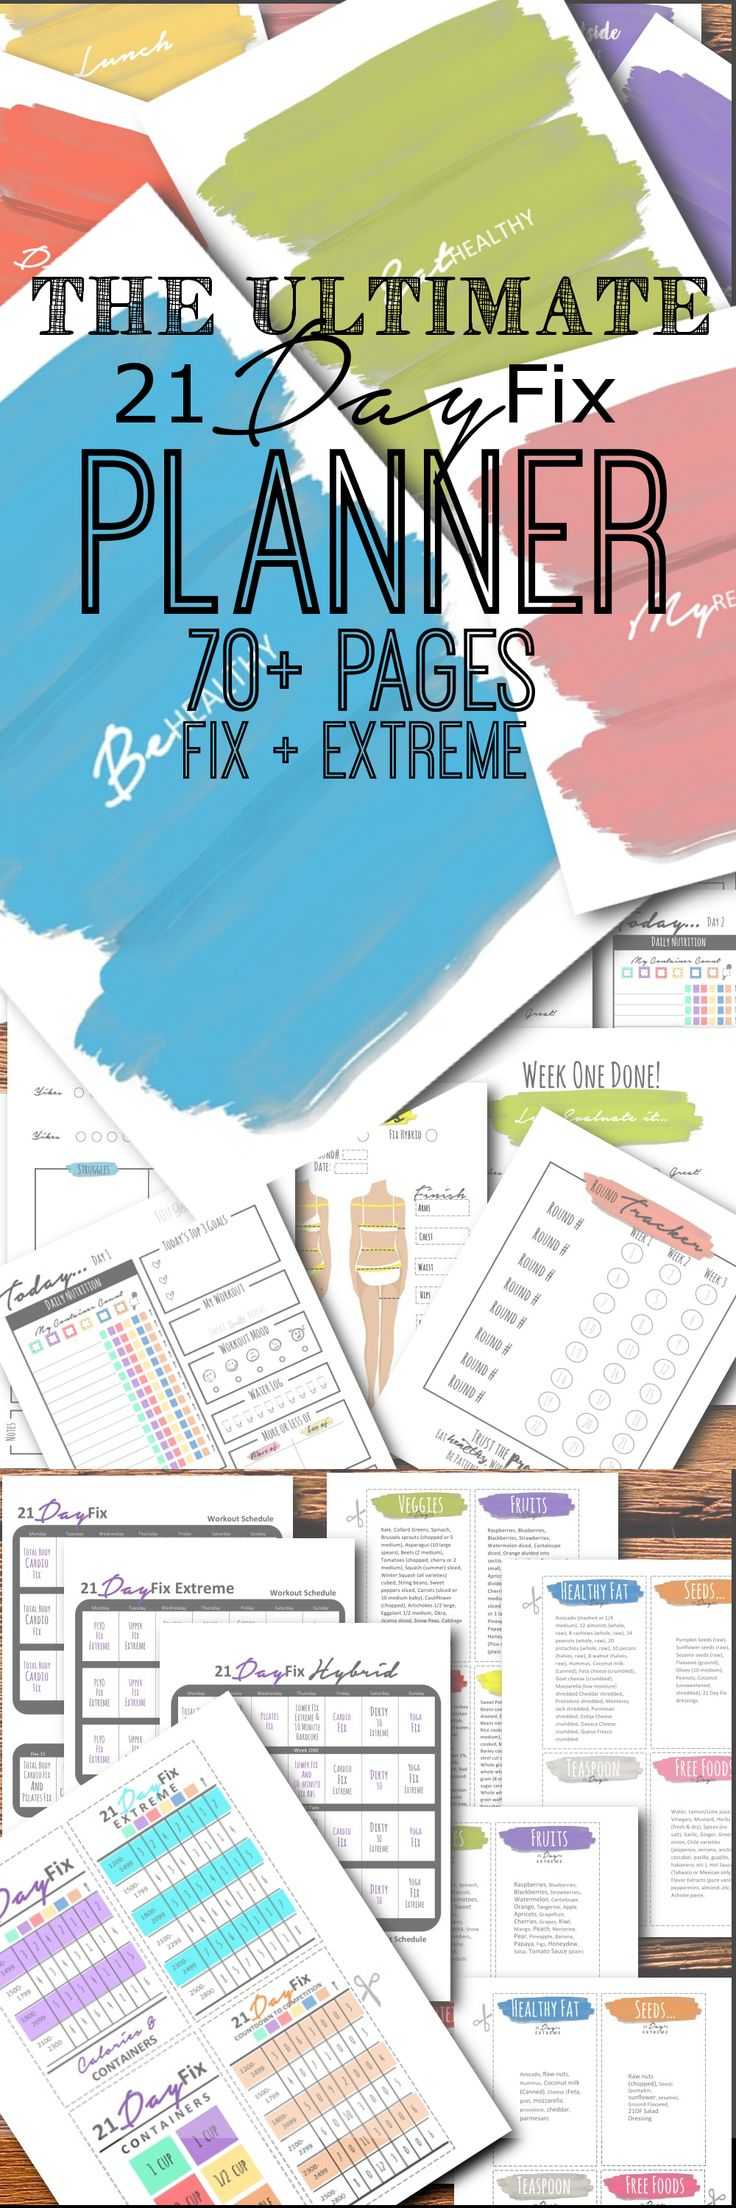 NEW and IMPROVED 21 Day FIX and 21 Day Fix EXTREME PLANNER!!! Meal planner…